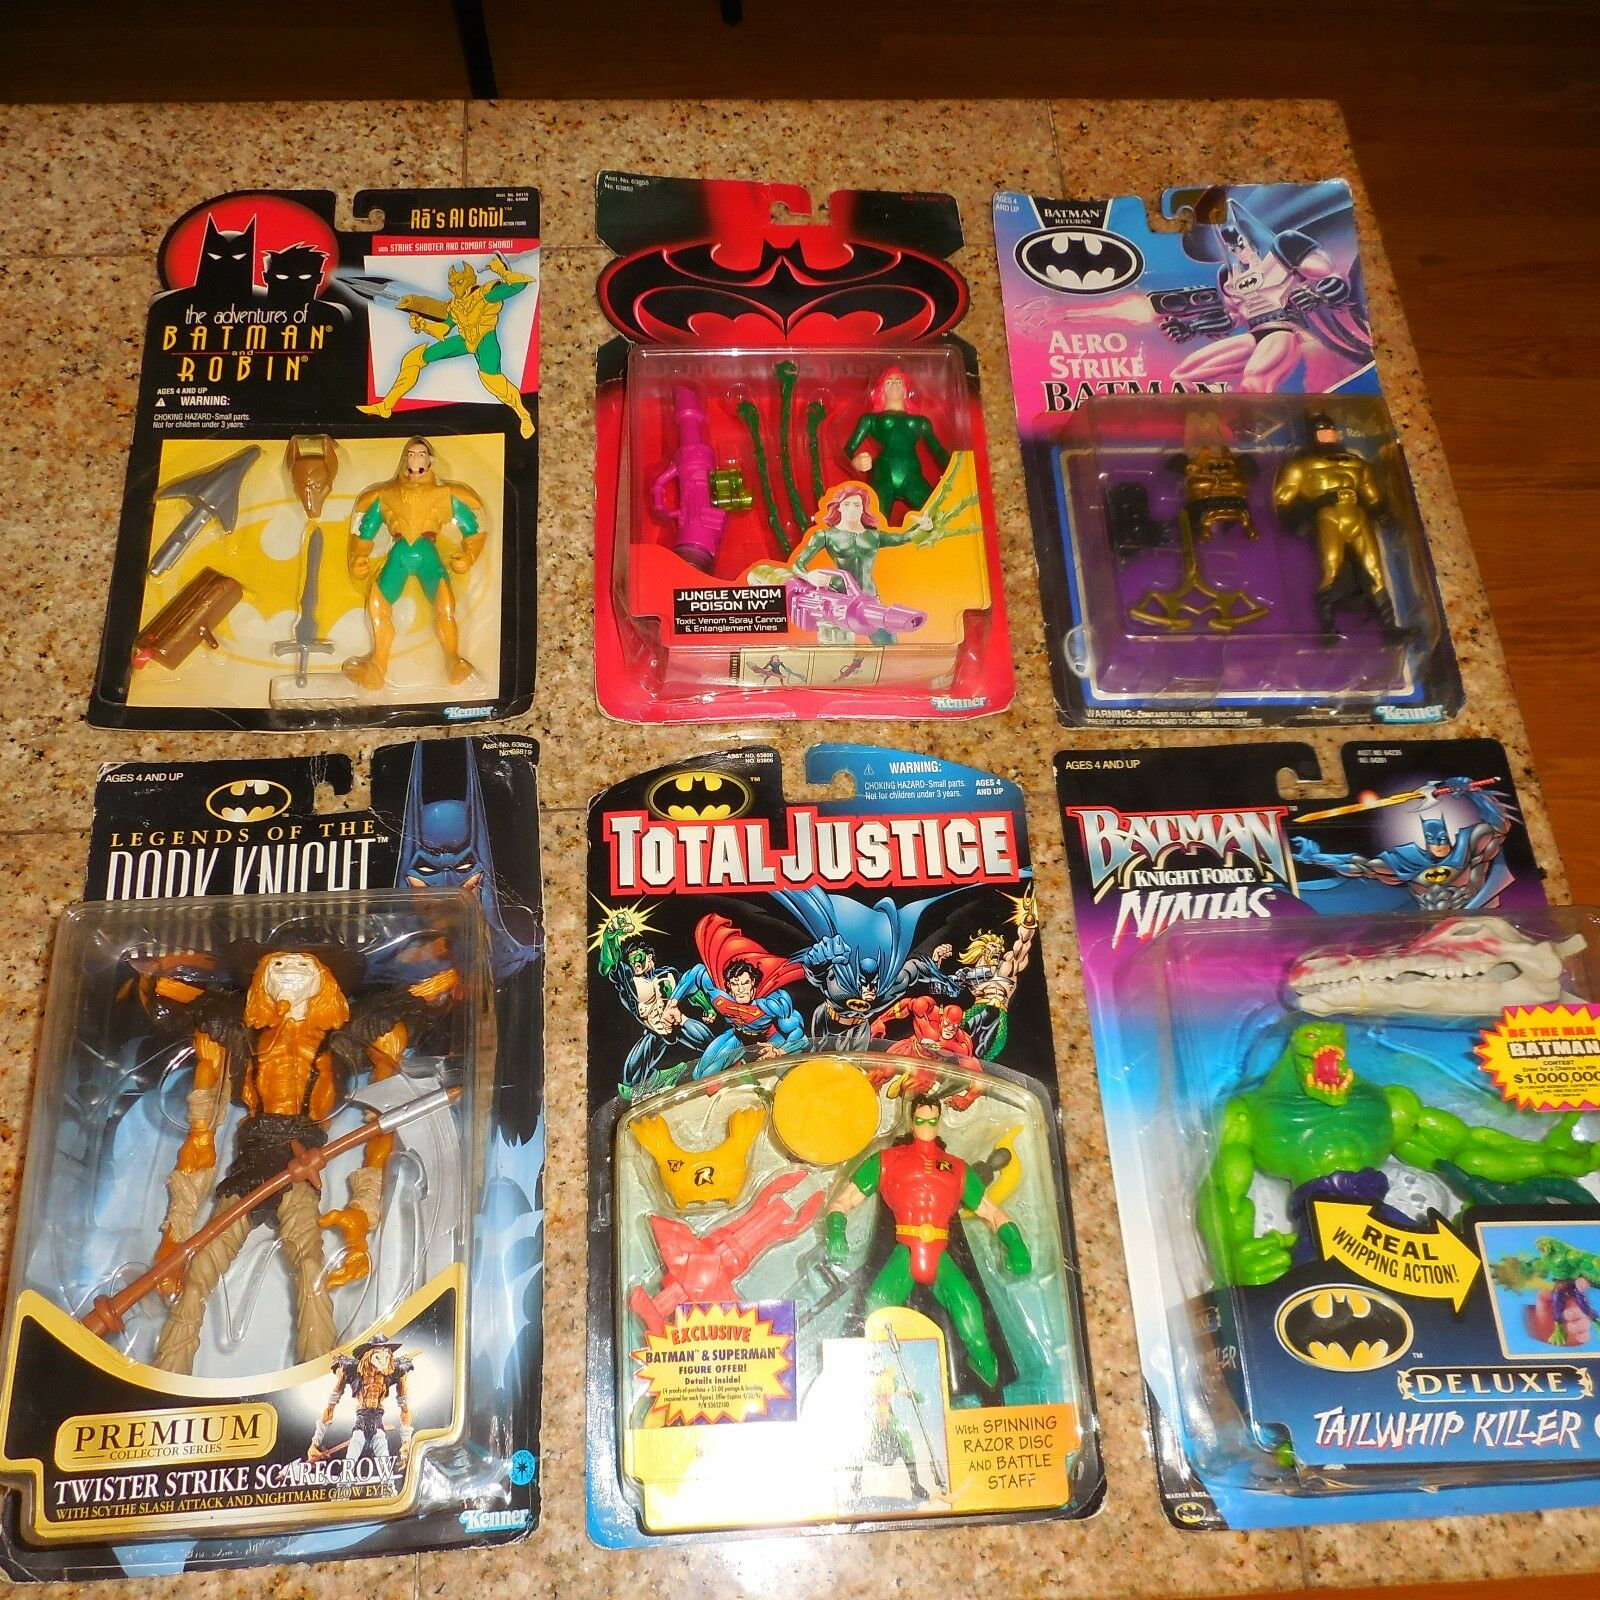 6 FIGURE LOT BATMAN &ROBIN AERO STRIKE TWISTER SCARECROW JUNGLE VENOM POISON IVY